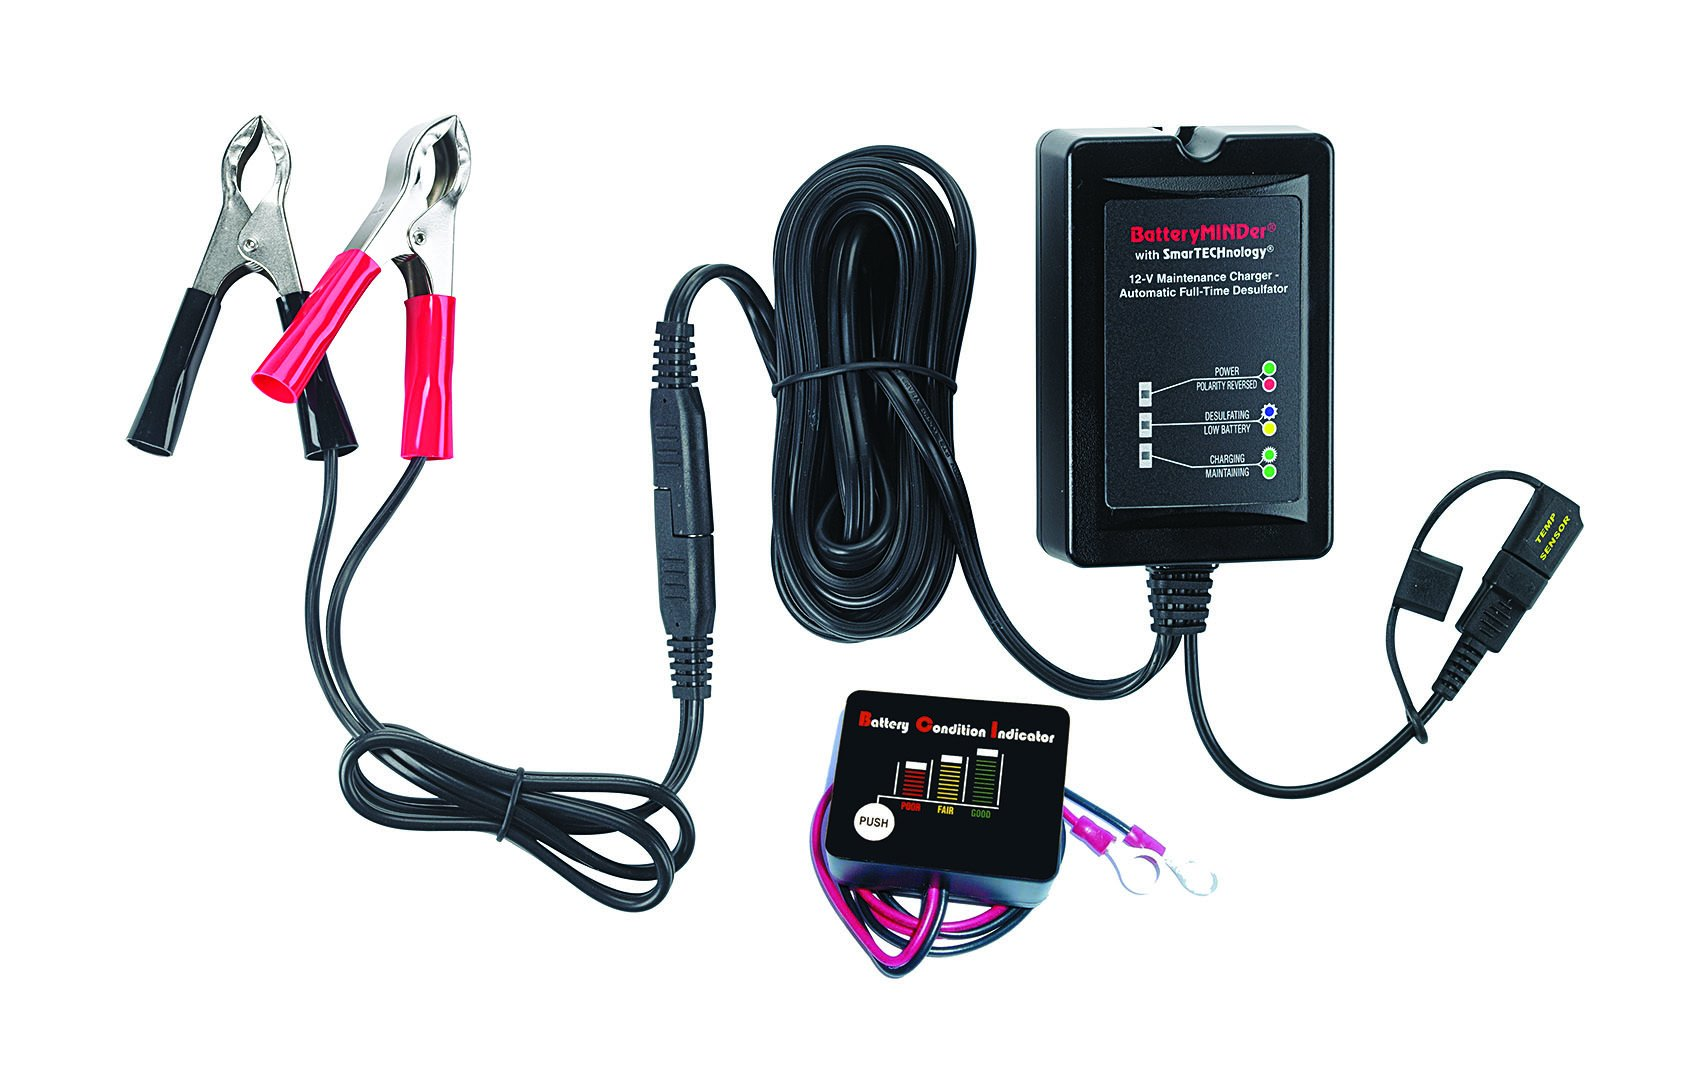 BatteryMINDer Model 1500CEC1B: 12Volt-1.5 Amp Battery Charger Maintenance Charger/Desulfator with Push-Button Battery Indicator - Designed for Cars, Trucks, Motorcycles, ATV, Boat, RV, etc.